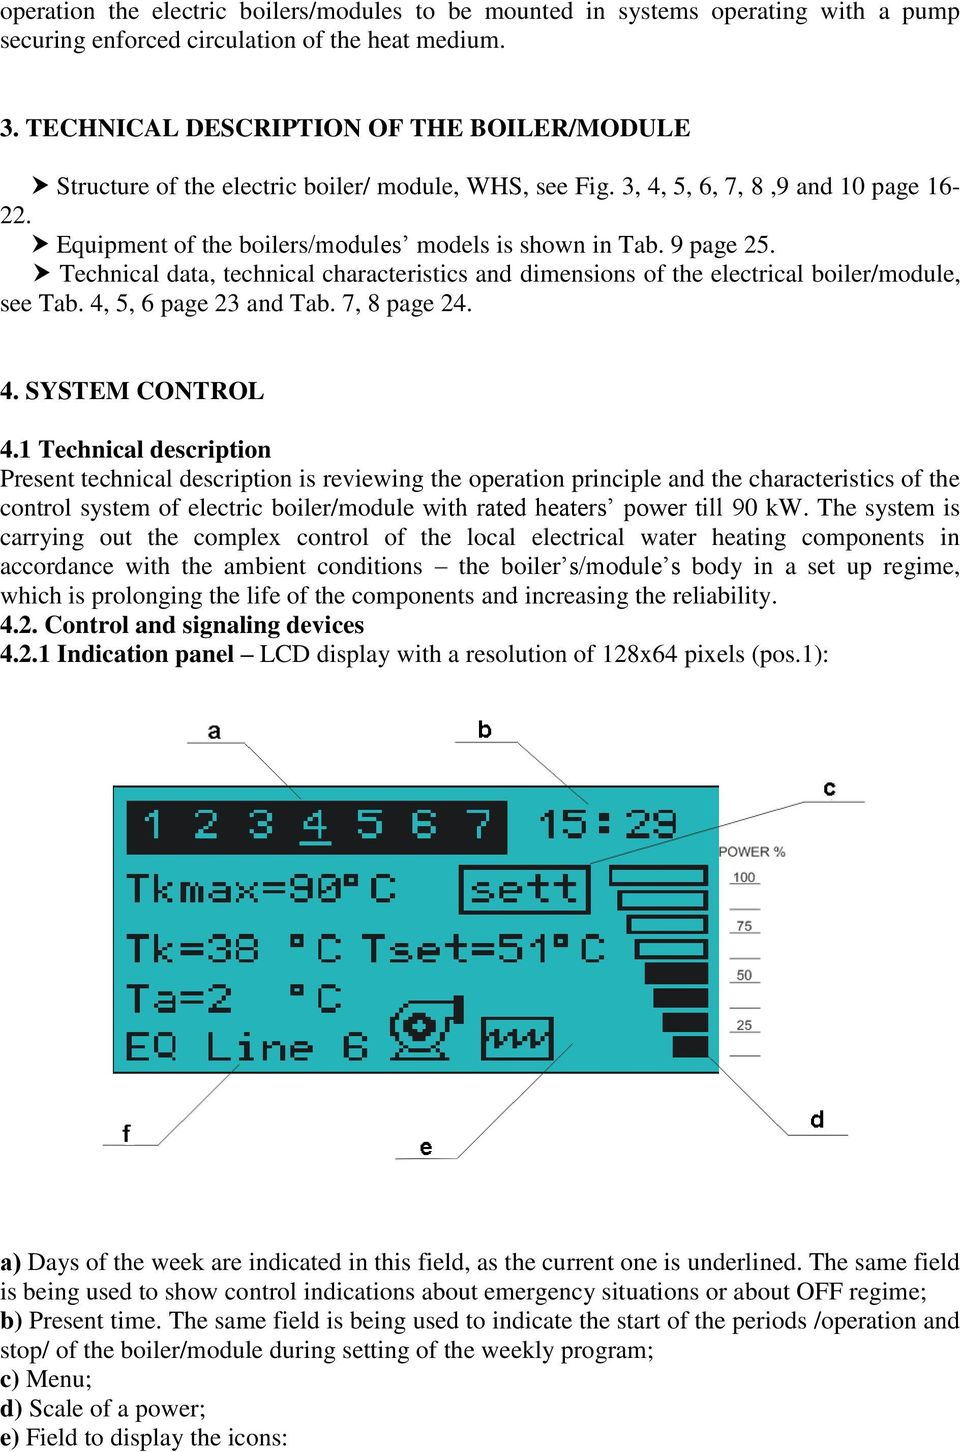 MANUAL FOR ASSEMBLY AND OPERATION OF ELECTRIC FLOW-THROUGH BOILER ...